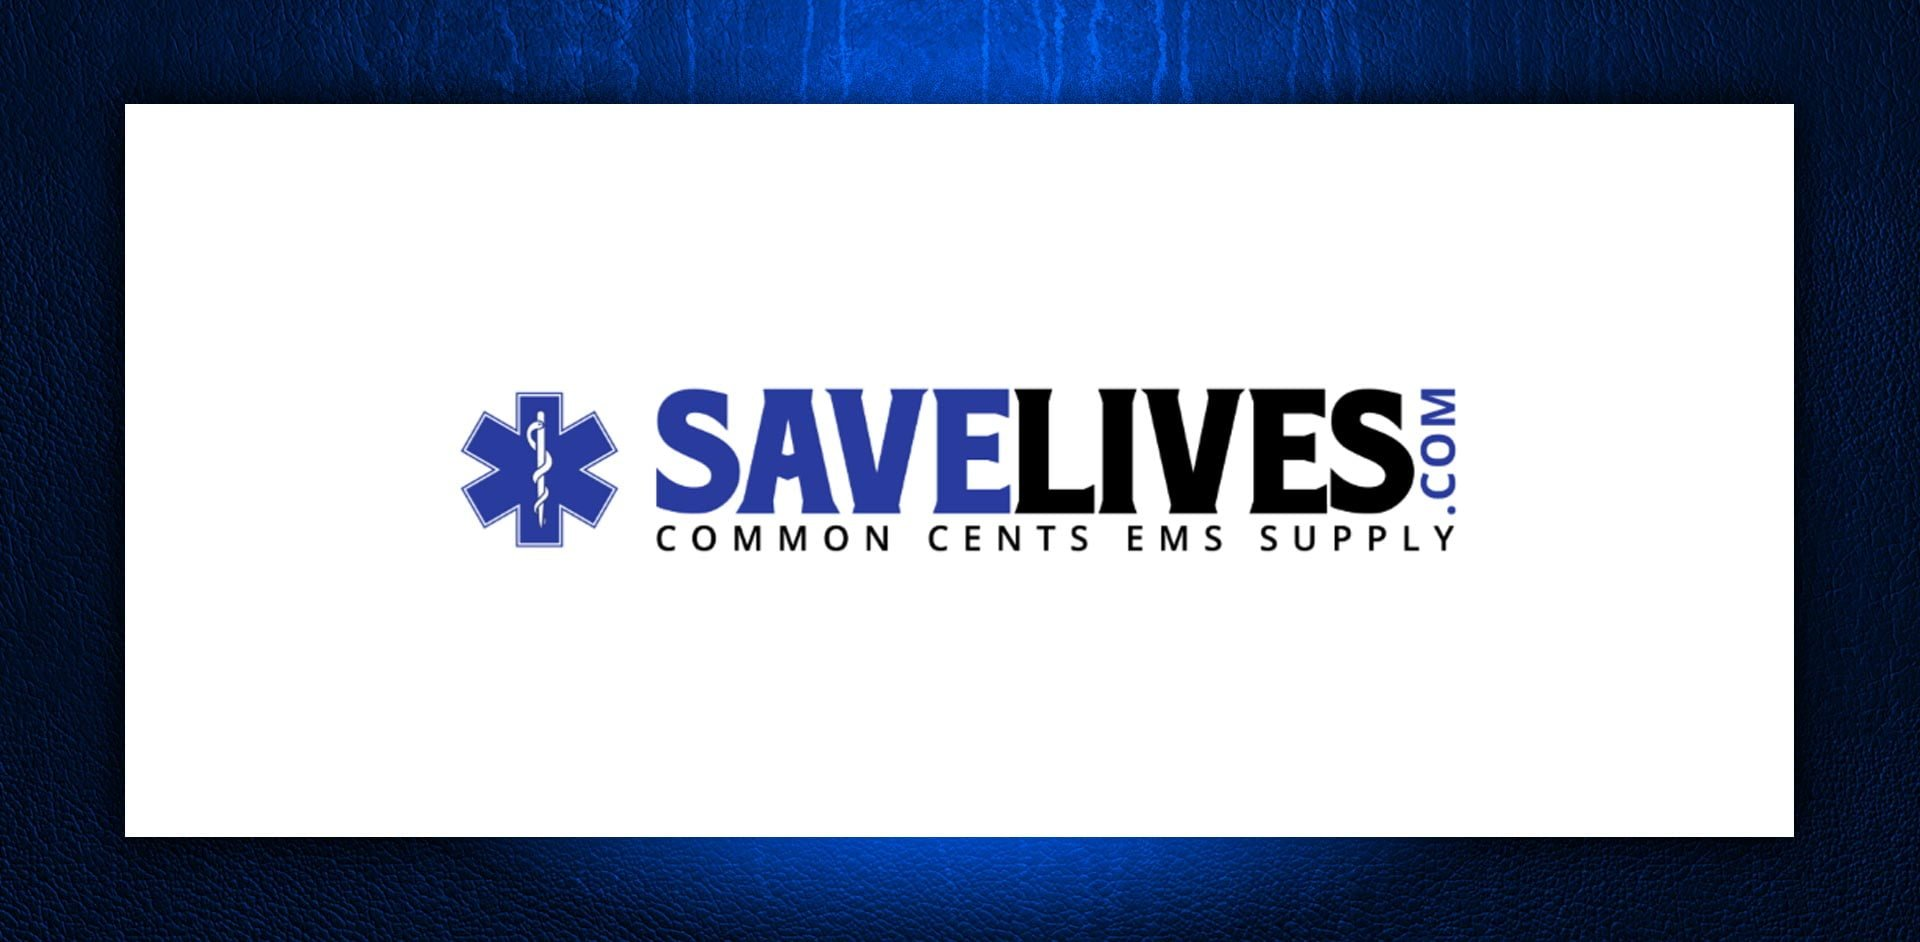 Common Cents EMS Supply LLC